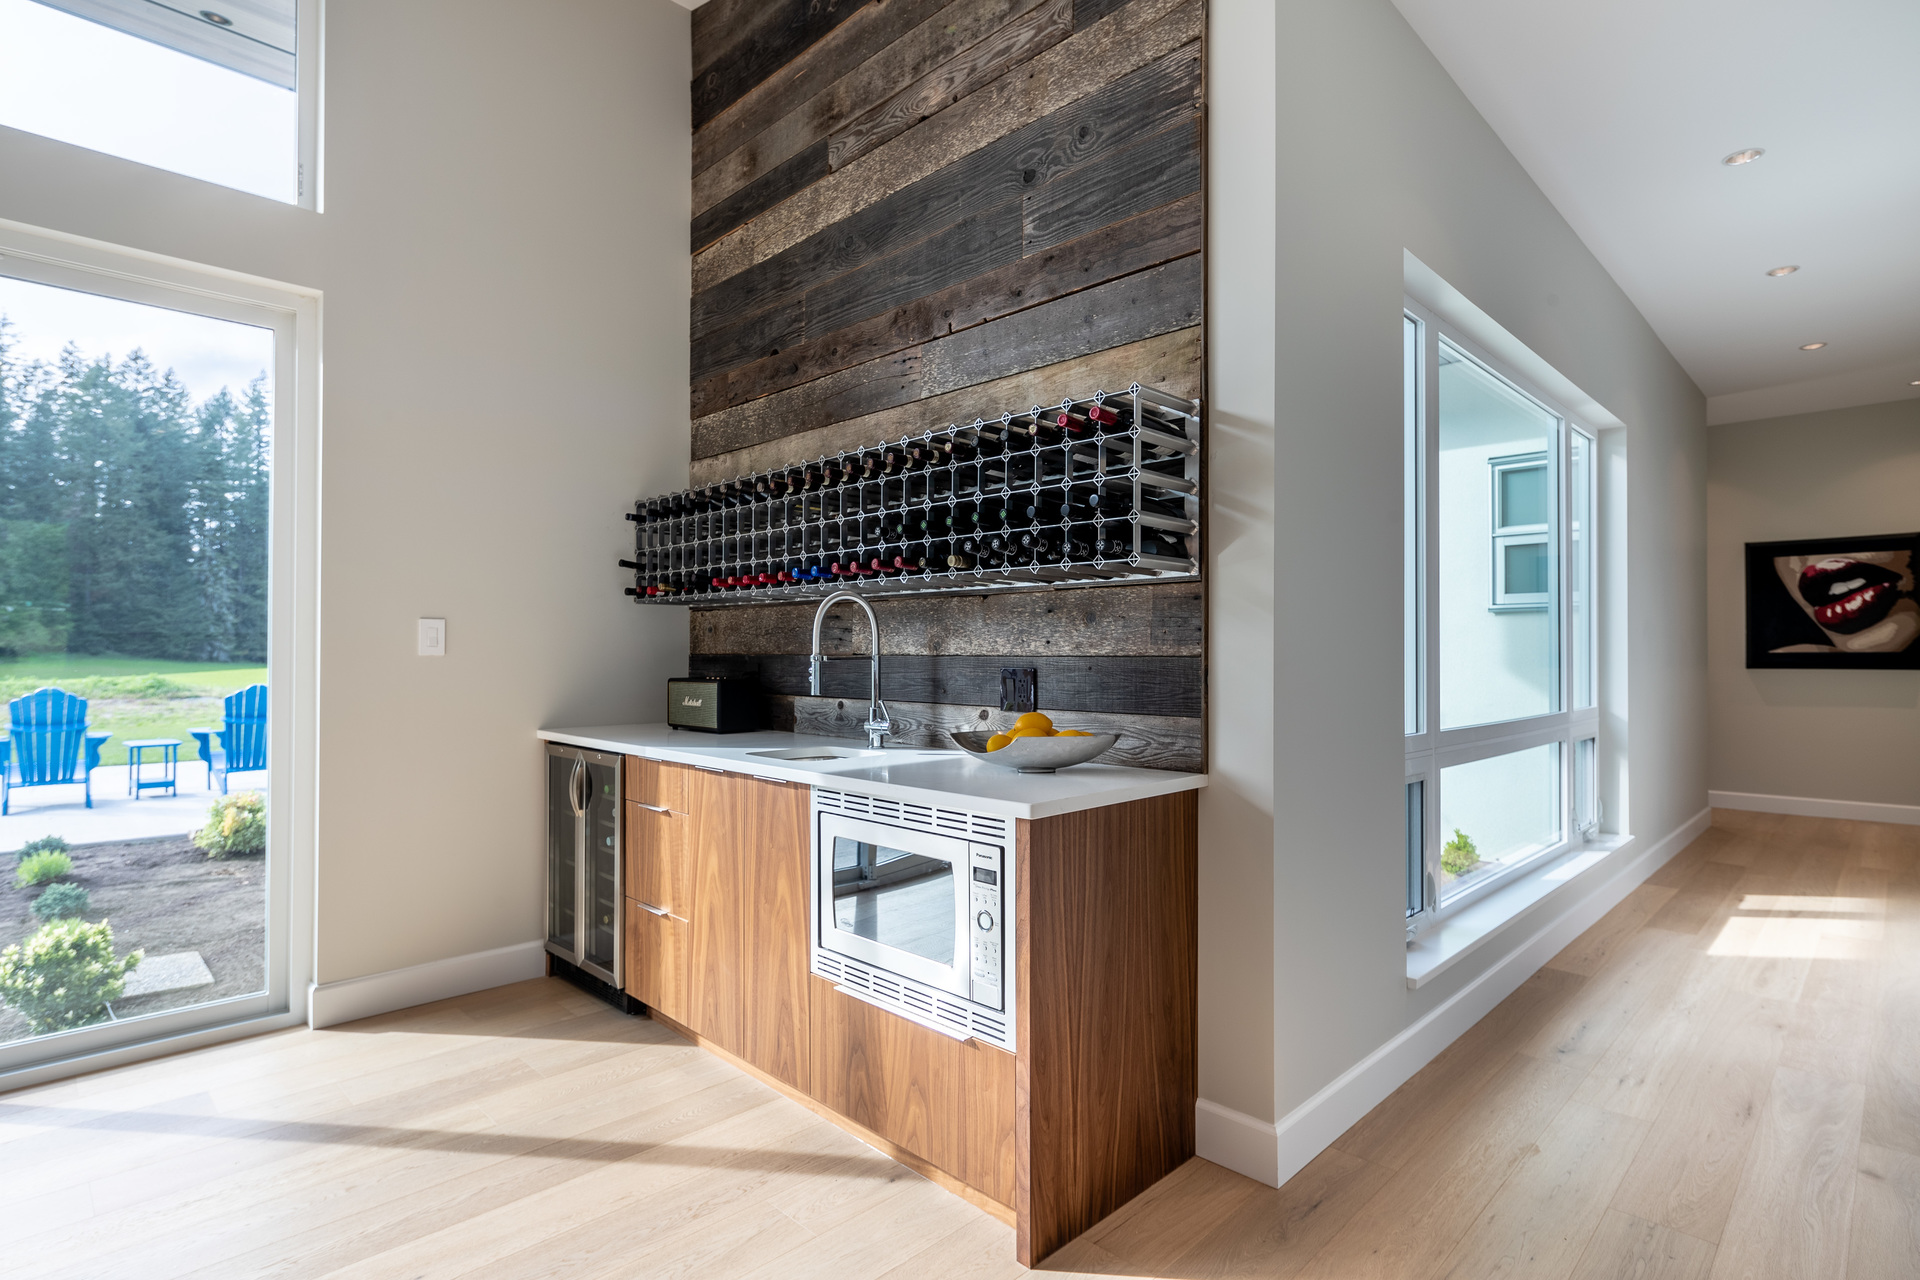 Wet Bar With Reclaimed Wood Backsplash at 5101 Jagtar's Way, Prospect Lake, Saanich West